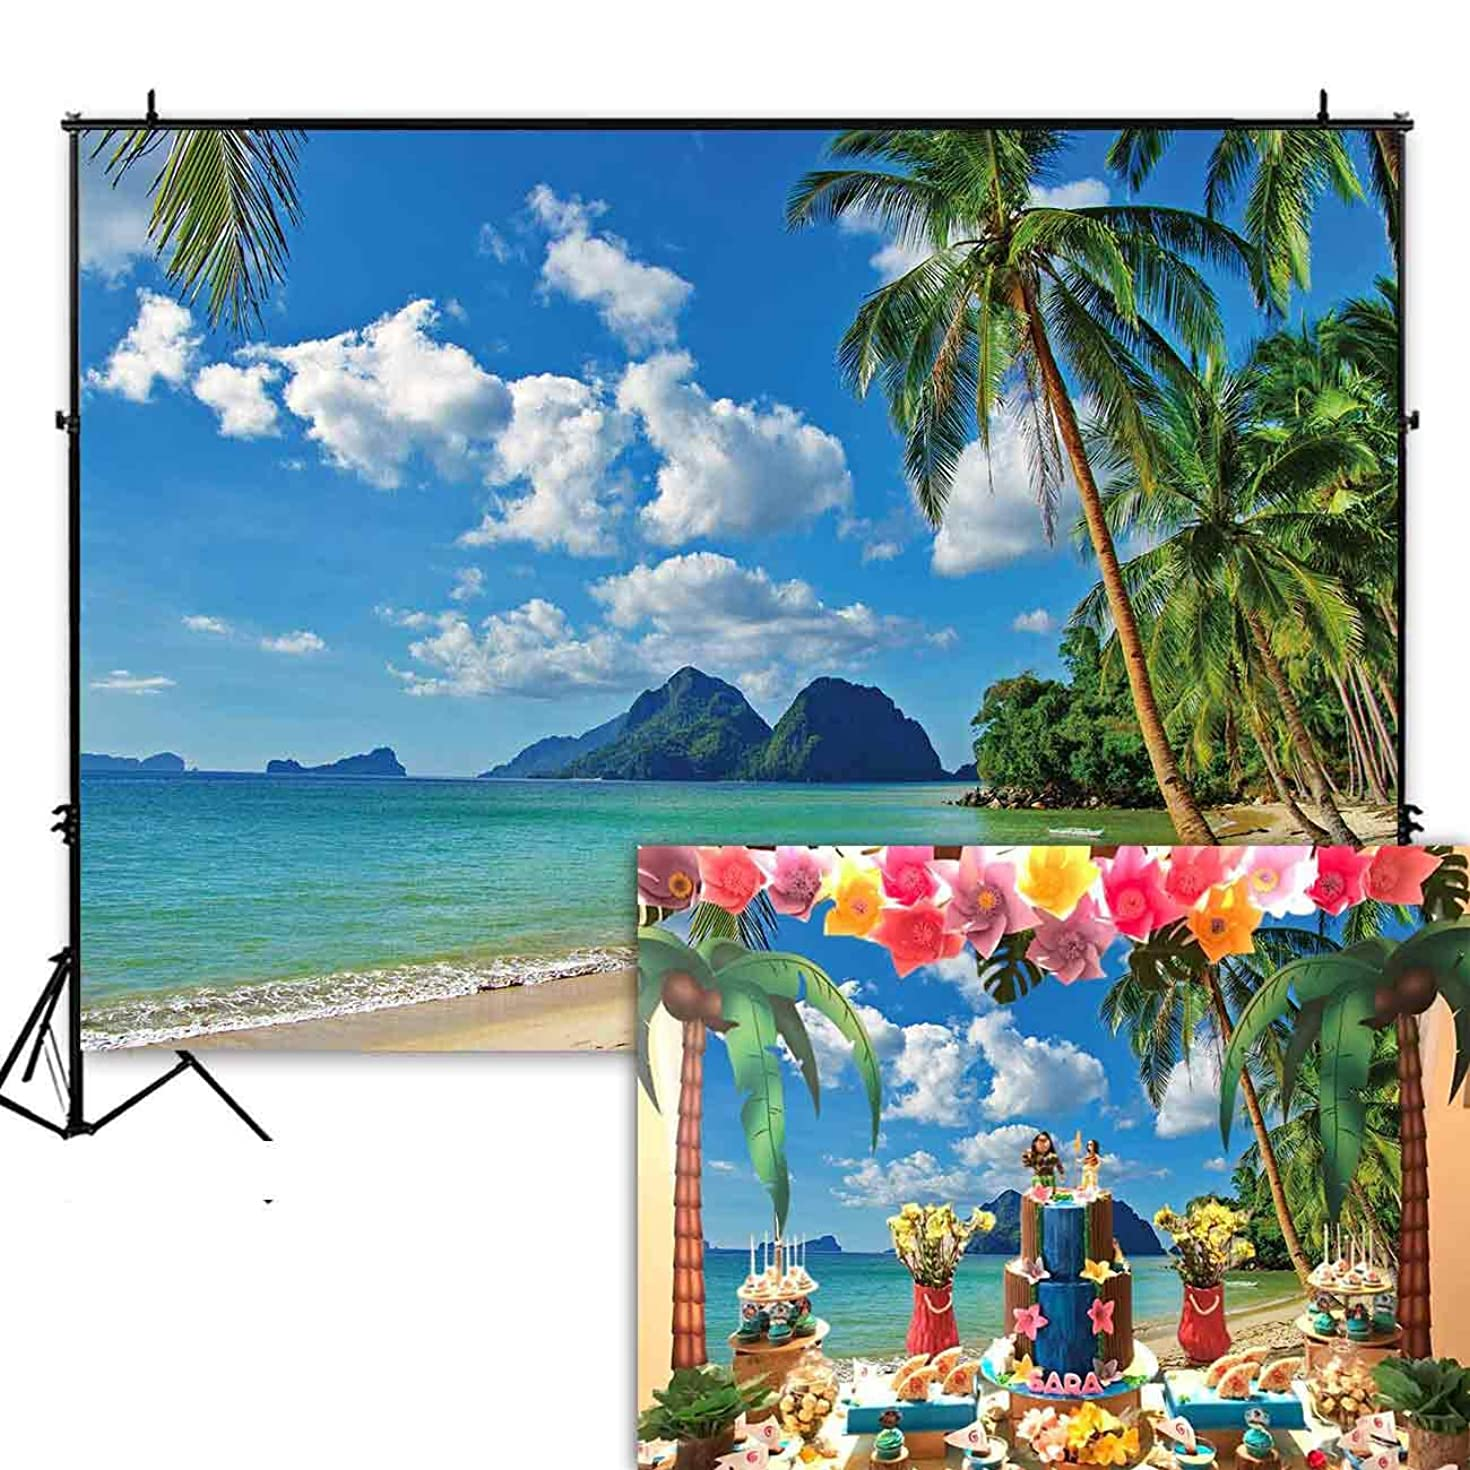 Funnytree 7x5ft Summer Tropical Beach Backdrop Seaside Island Palm Trees Photography Background for Picture Blue Sea Sky Sunshine Luau Themed Party Decorations Photo Booth Studio Props